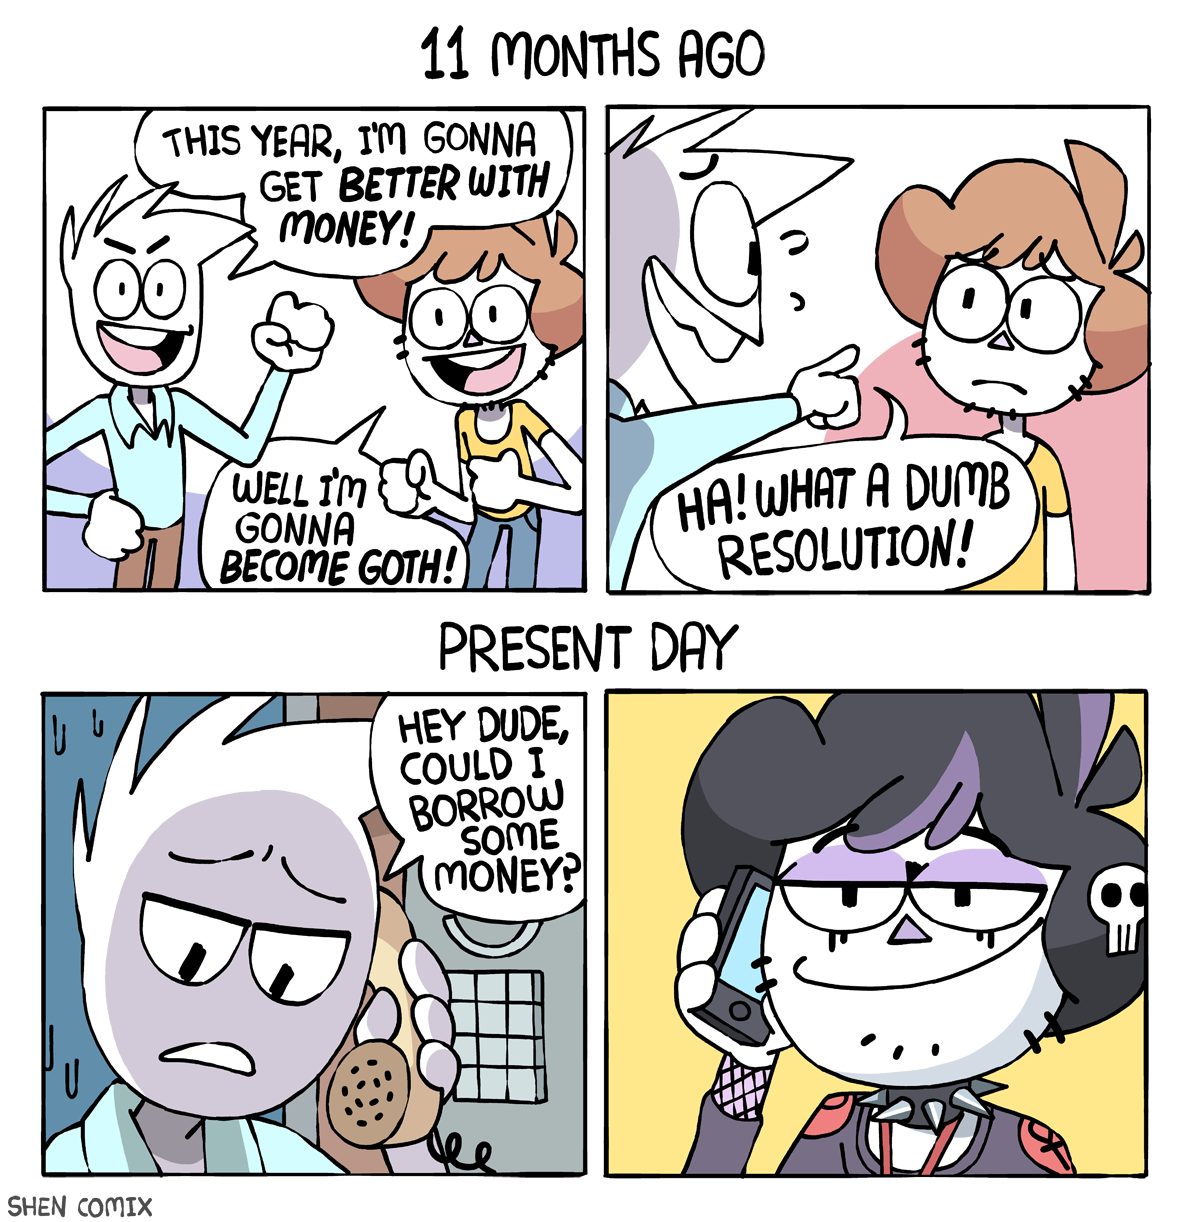 Pin by J. Tanner Breeze on Comics Fun comics, Owlturd